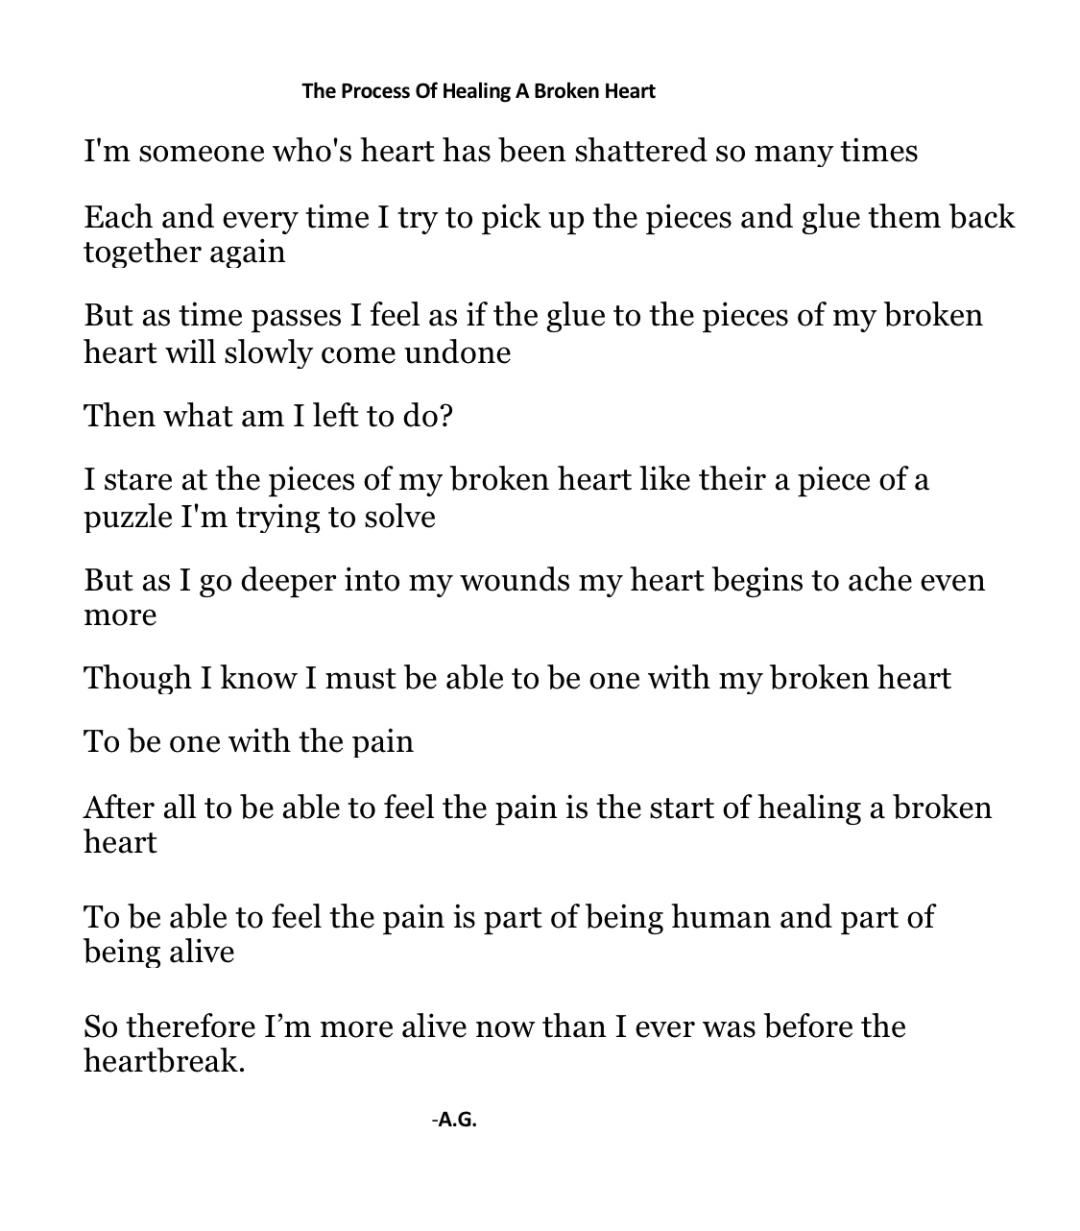 I Wrote This Poem Based On My Own Process Of Healing And Putting